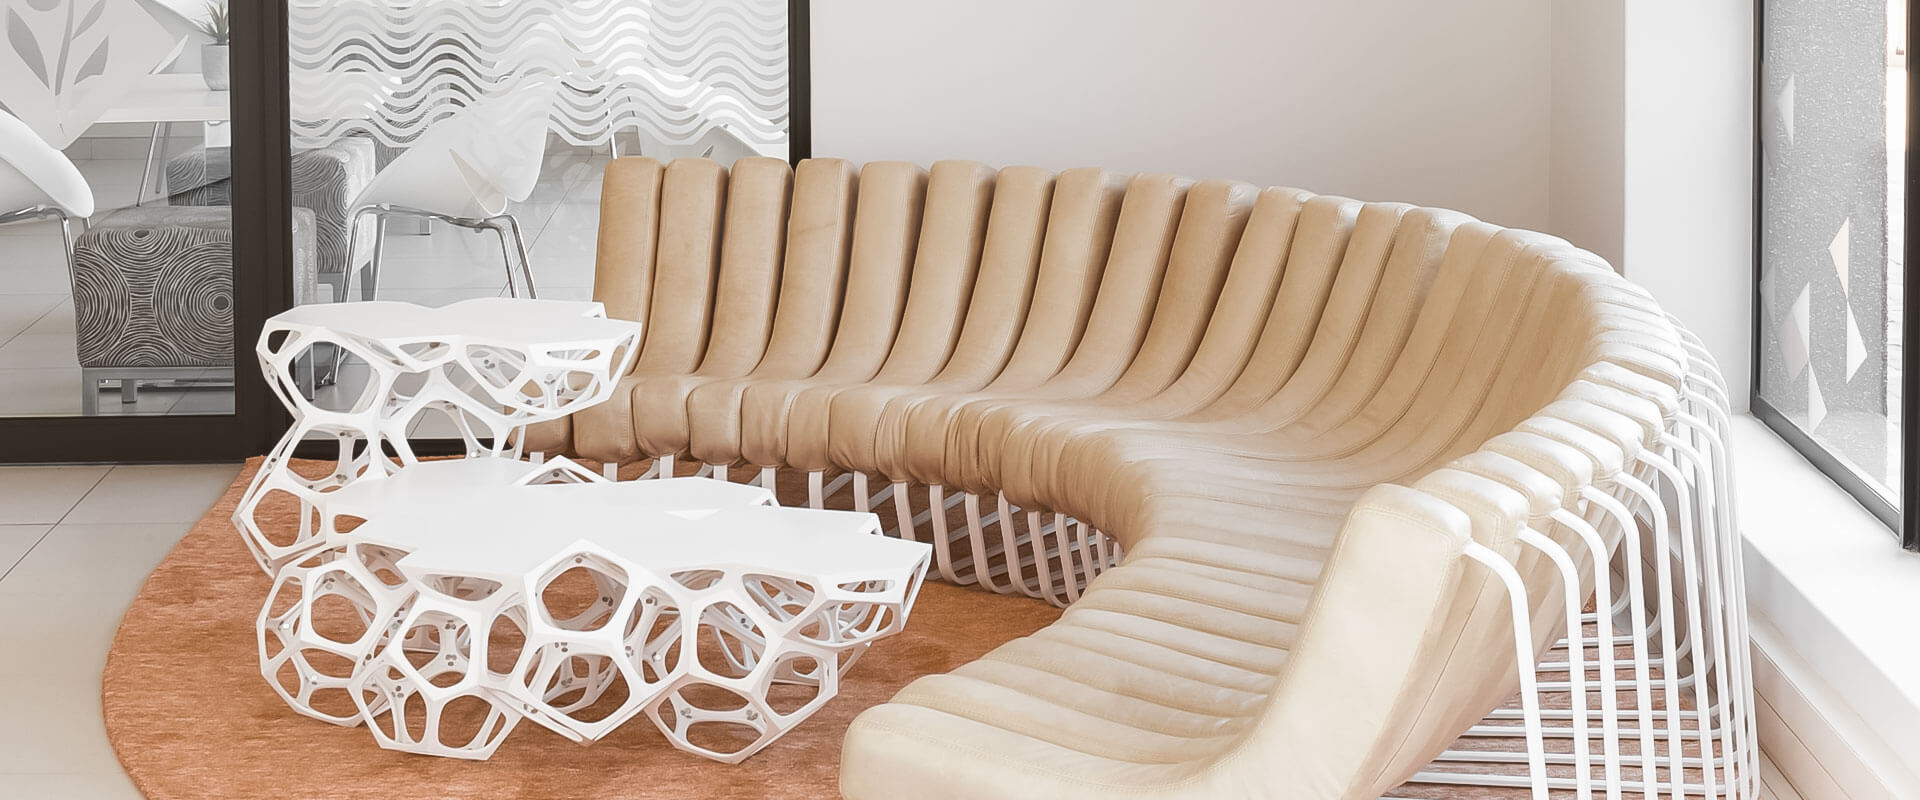 home_home_productdetails2